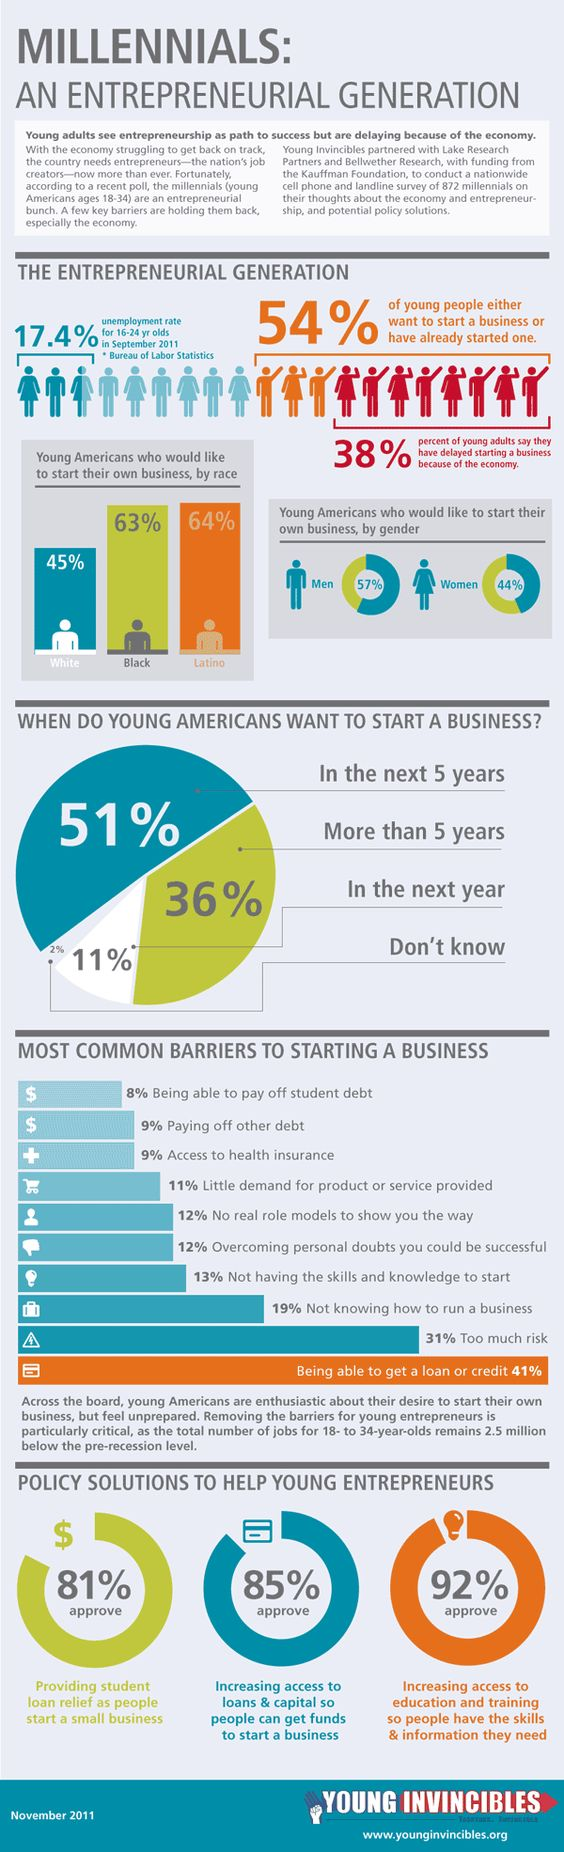 54% of young people want to start a business or have already started one